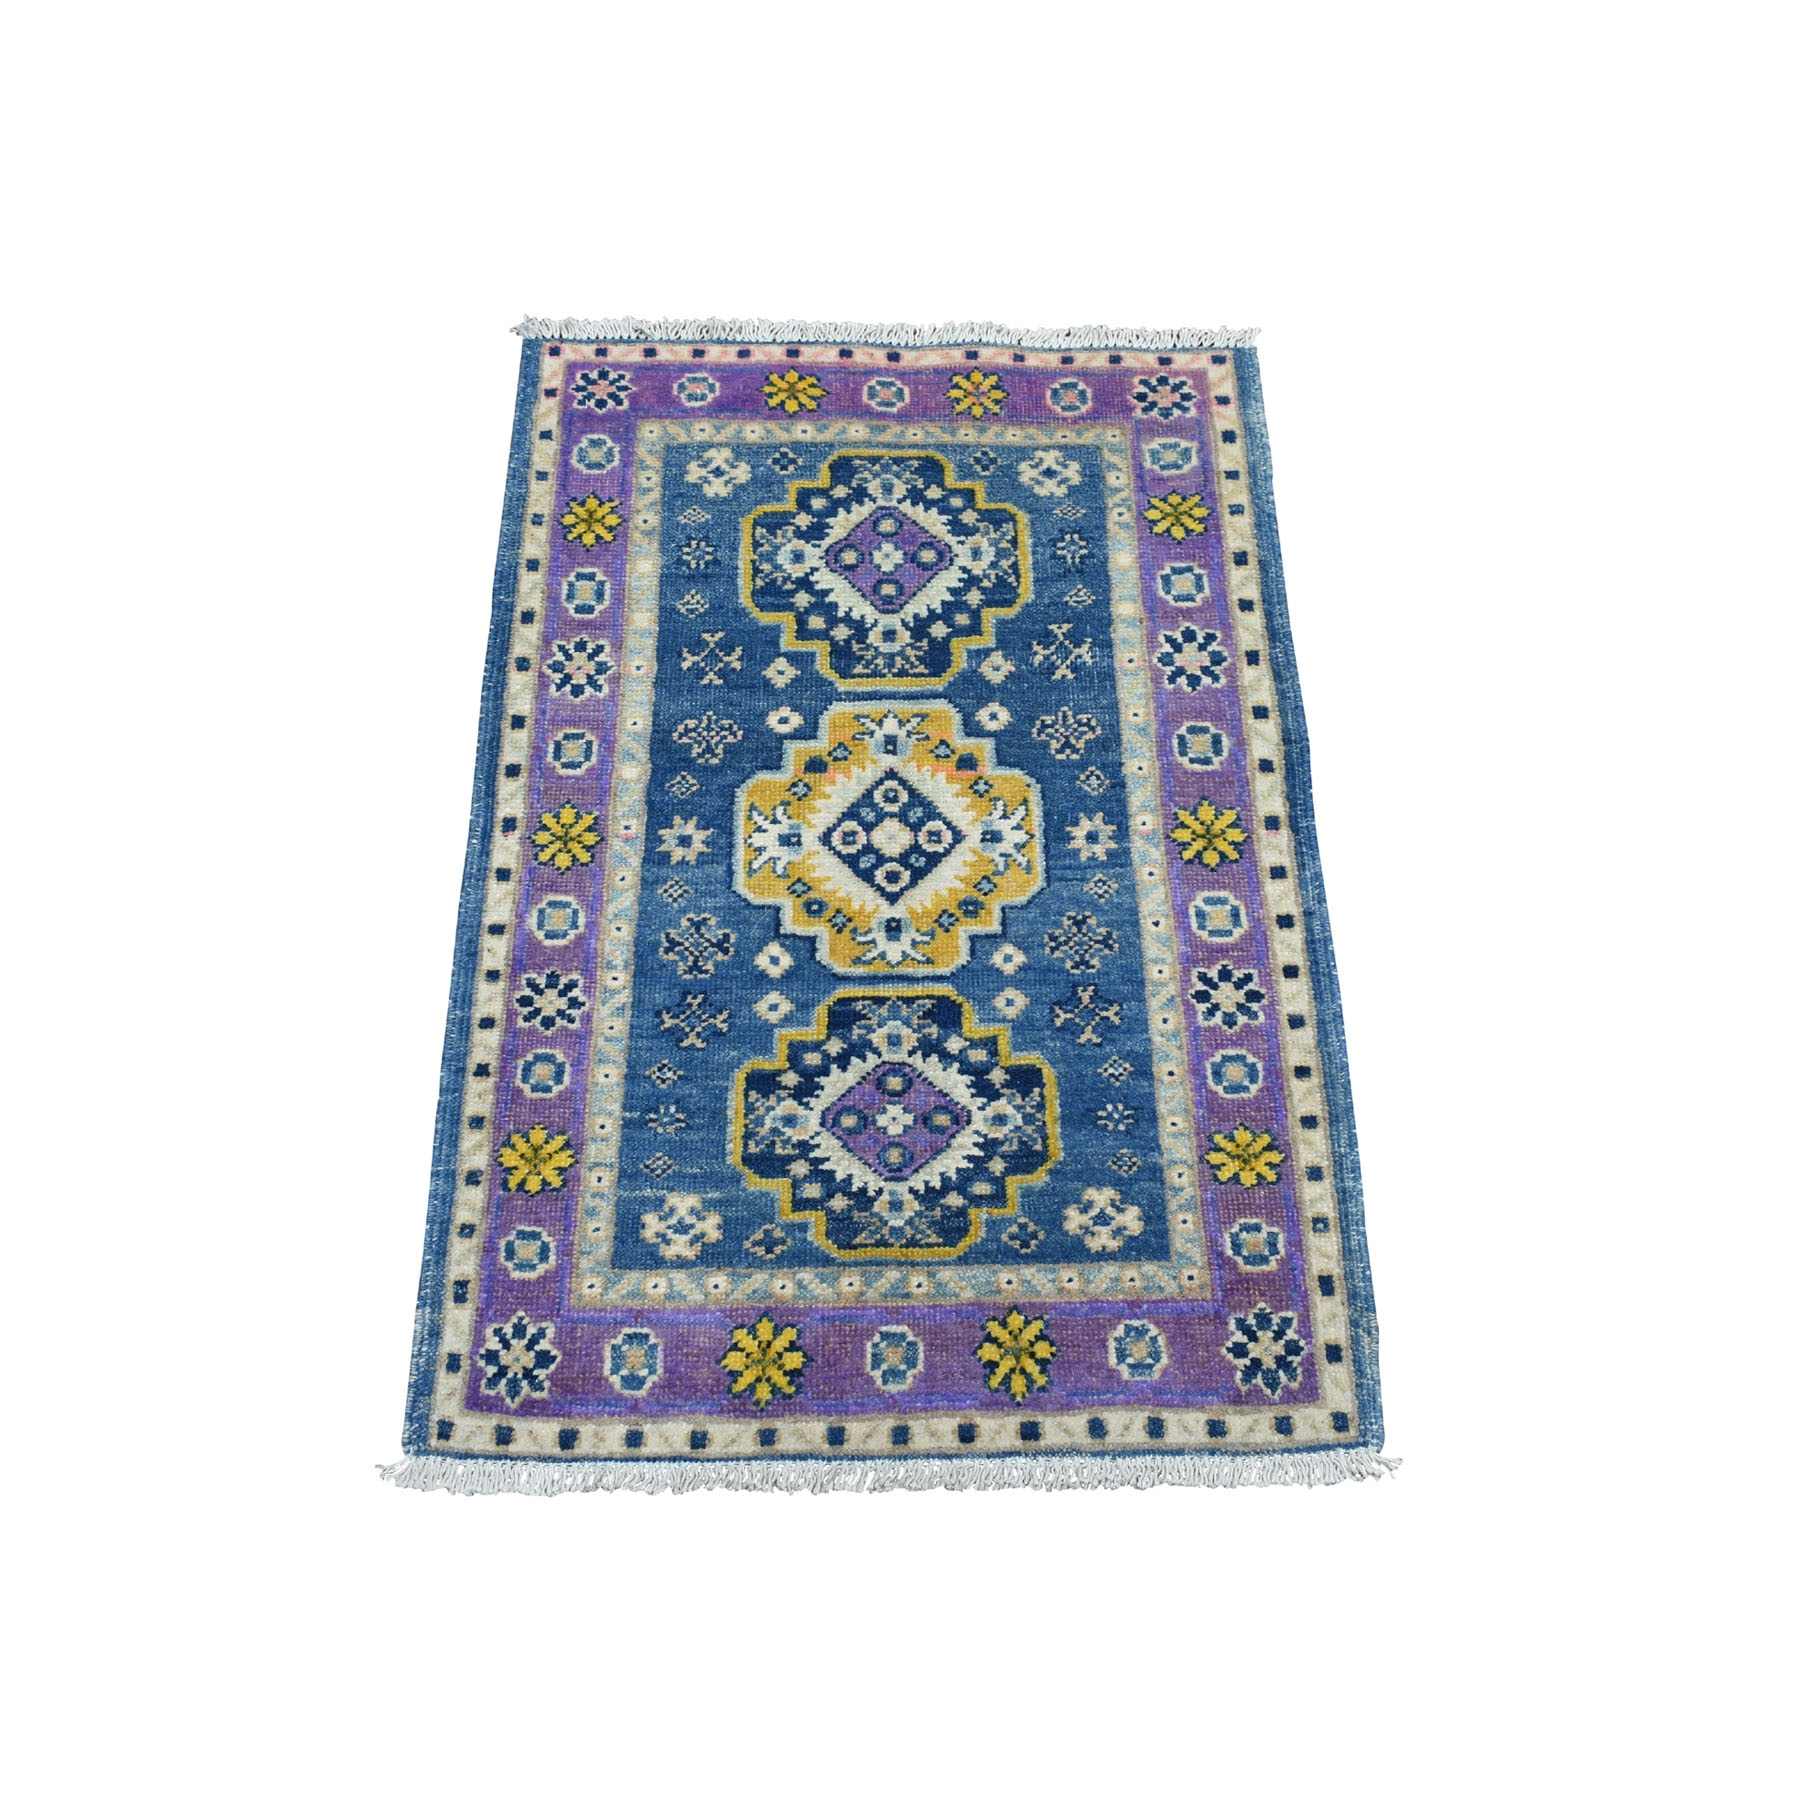 2'x3' Colorful Blue Fusion Kazak Pure Wool Geometric Design Hand Woven Oriental Rug